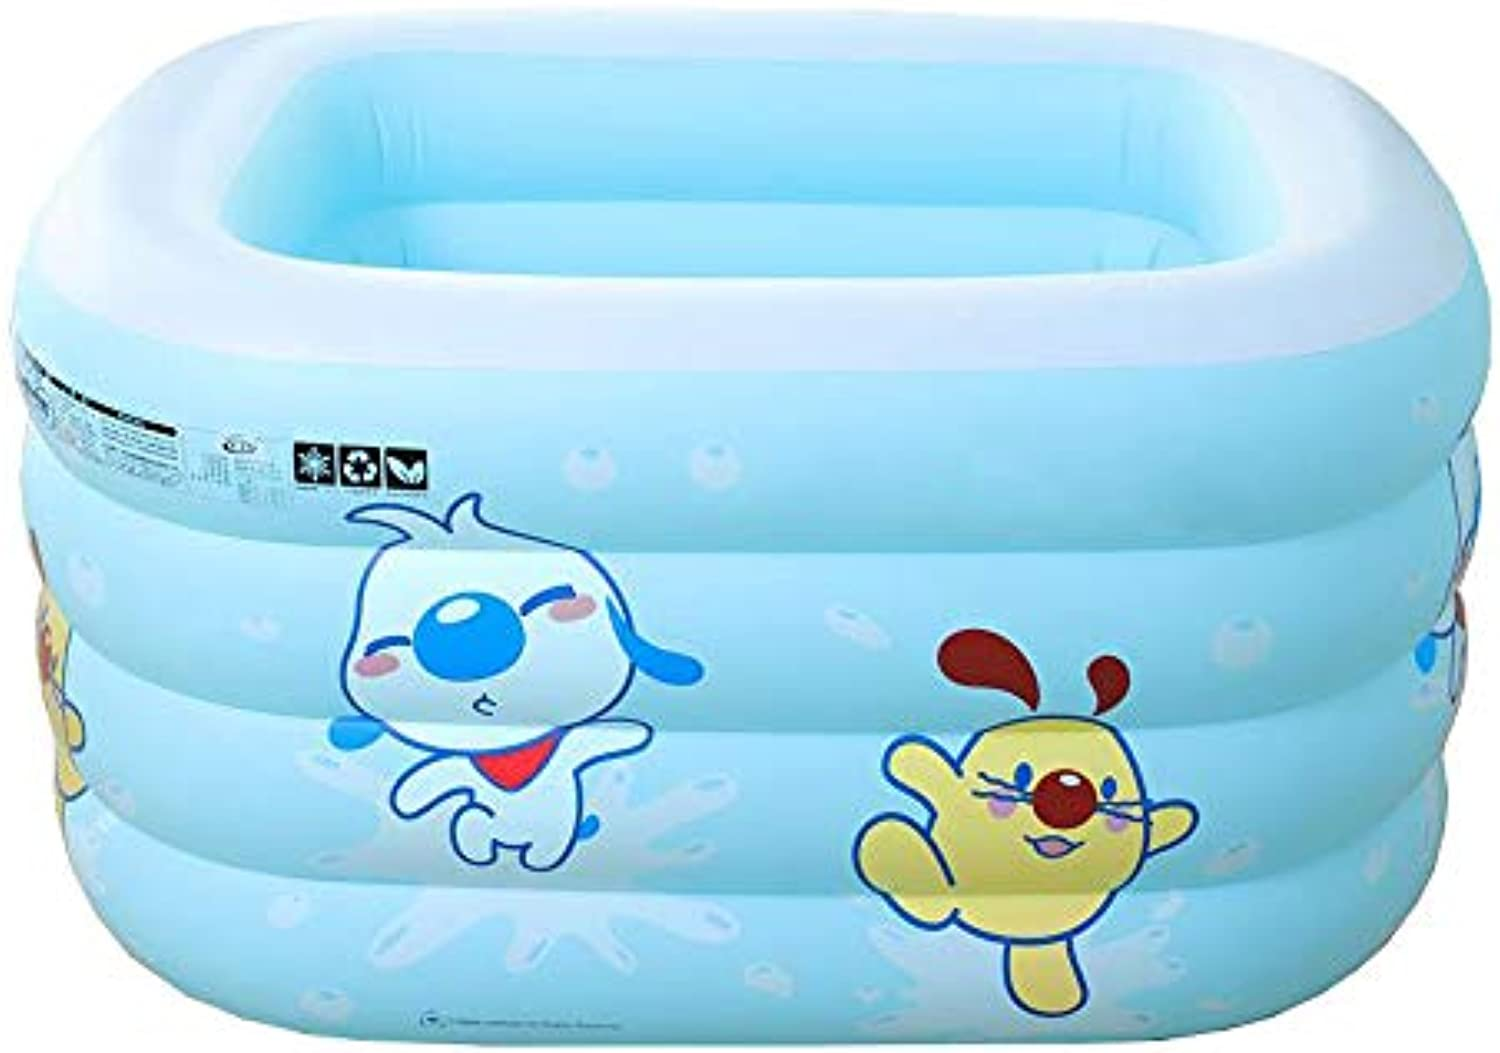 LEGOUGOU Baby Kinder Pool Multi-Level-aufblasbare Bad Garten Auenpool Eco-Friendly PVC Cartoon Malerei Schaumbad